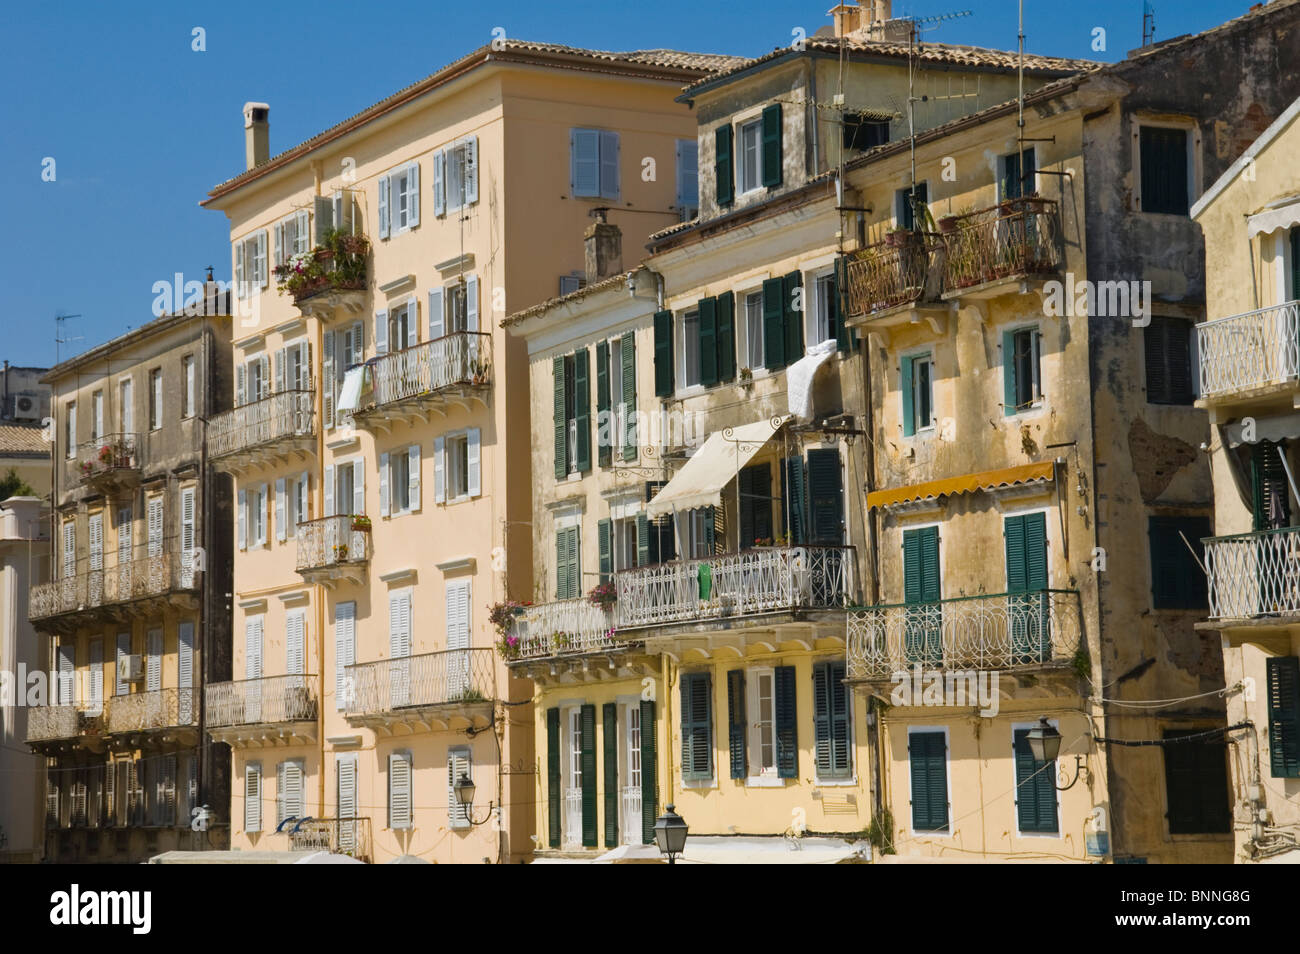 Venetian Style traditional venetian style buildings in old corfu town on the